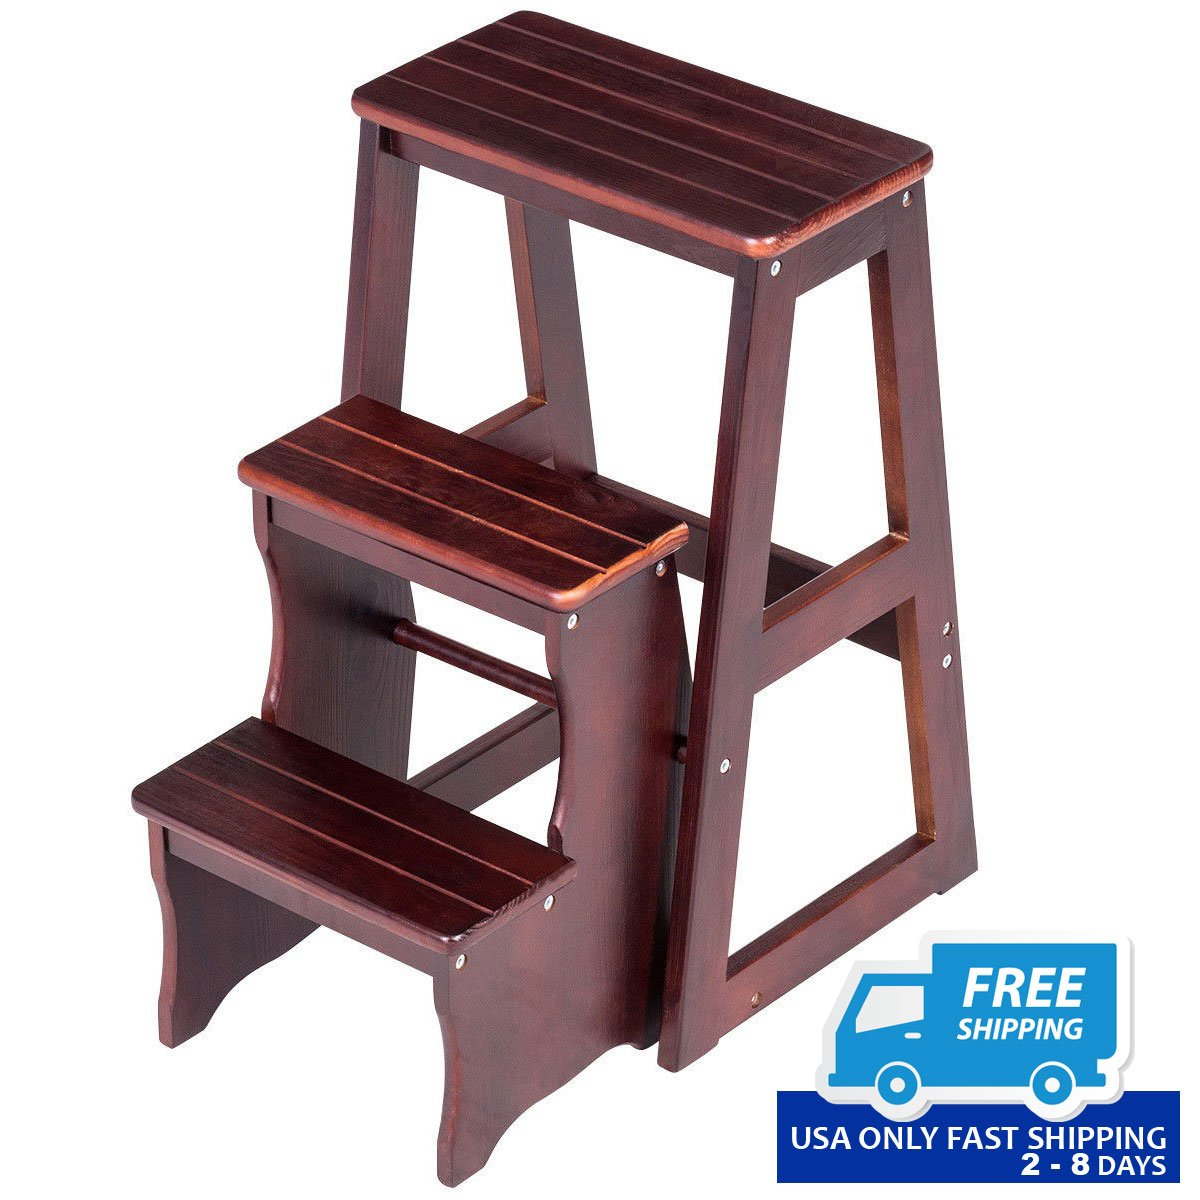 3 Tier Folding Wood Step Ladder Stool Bench By Choice